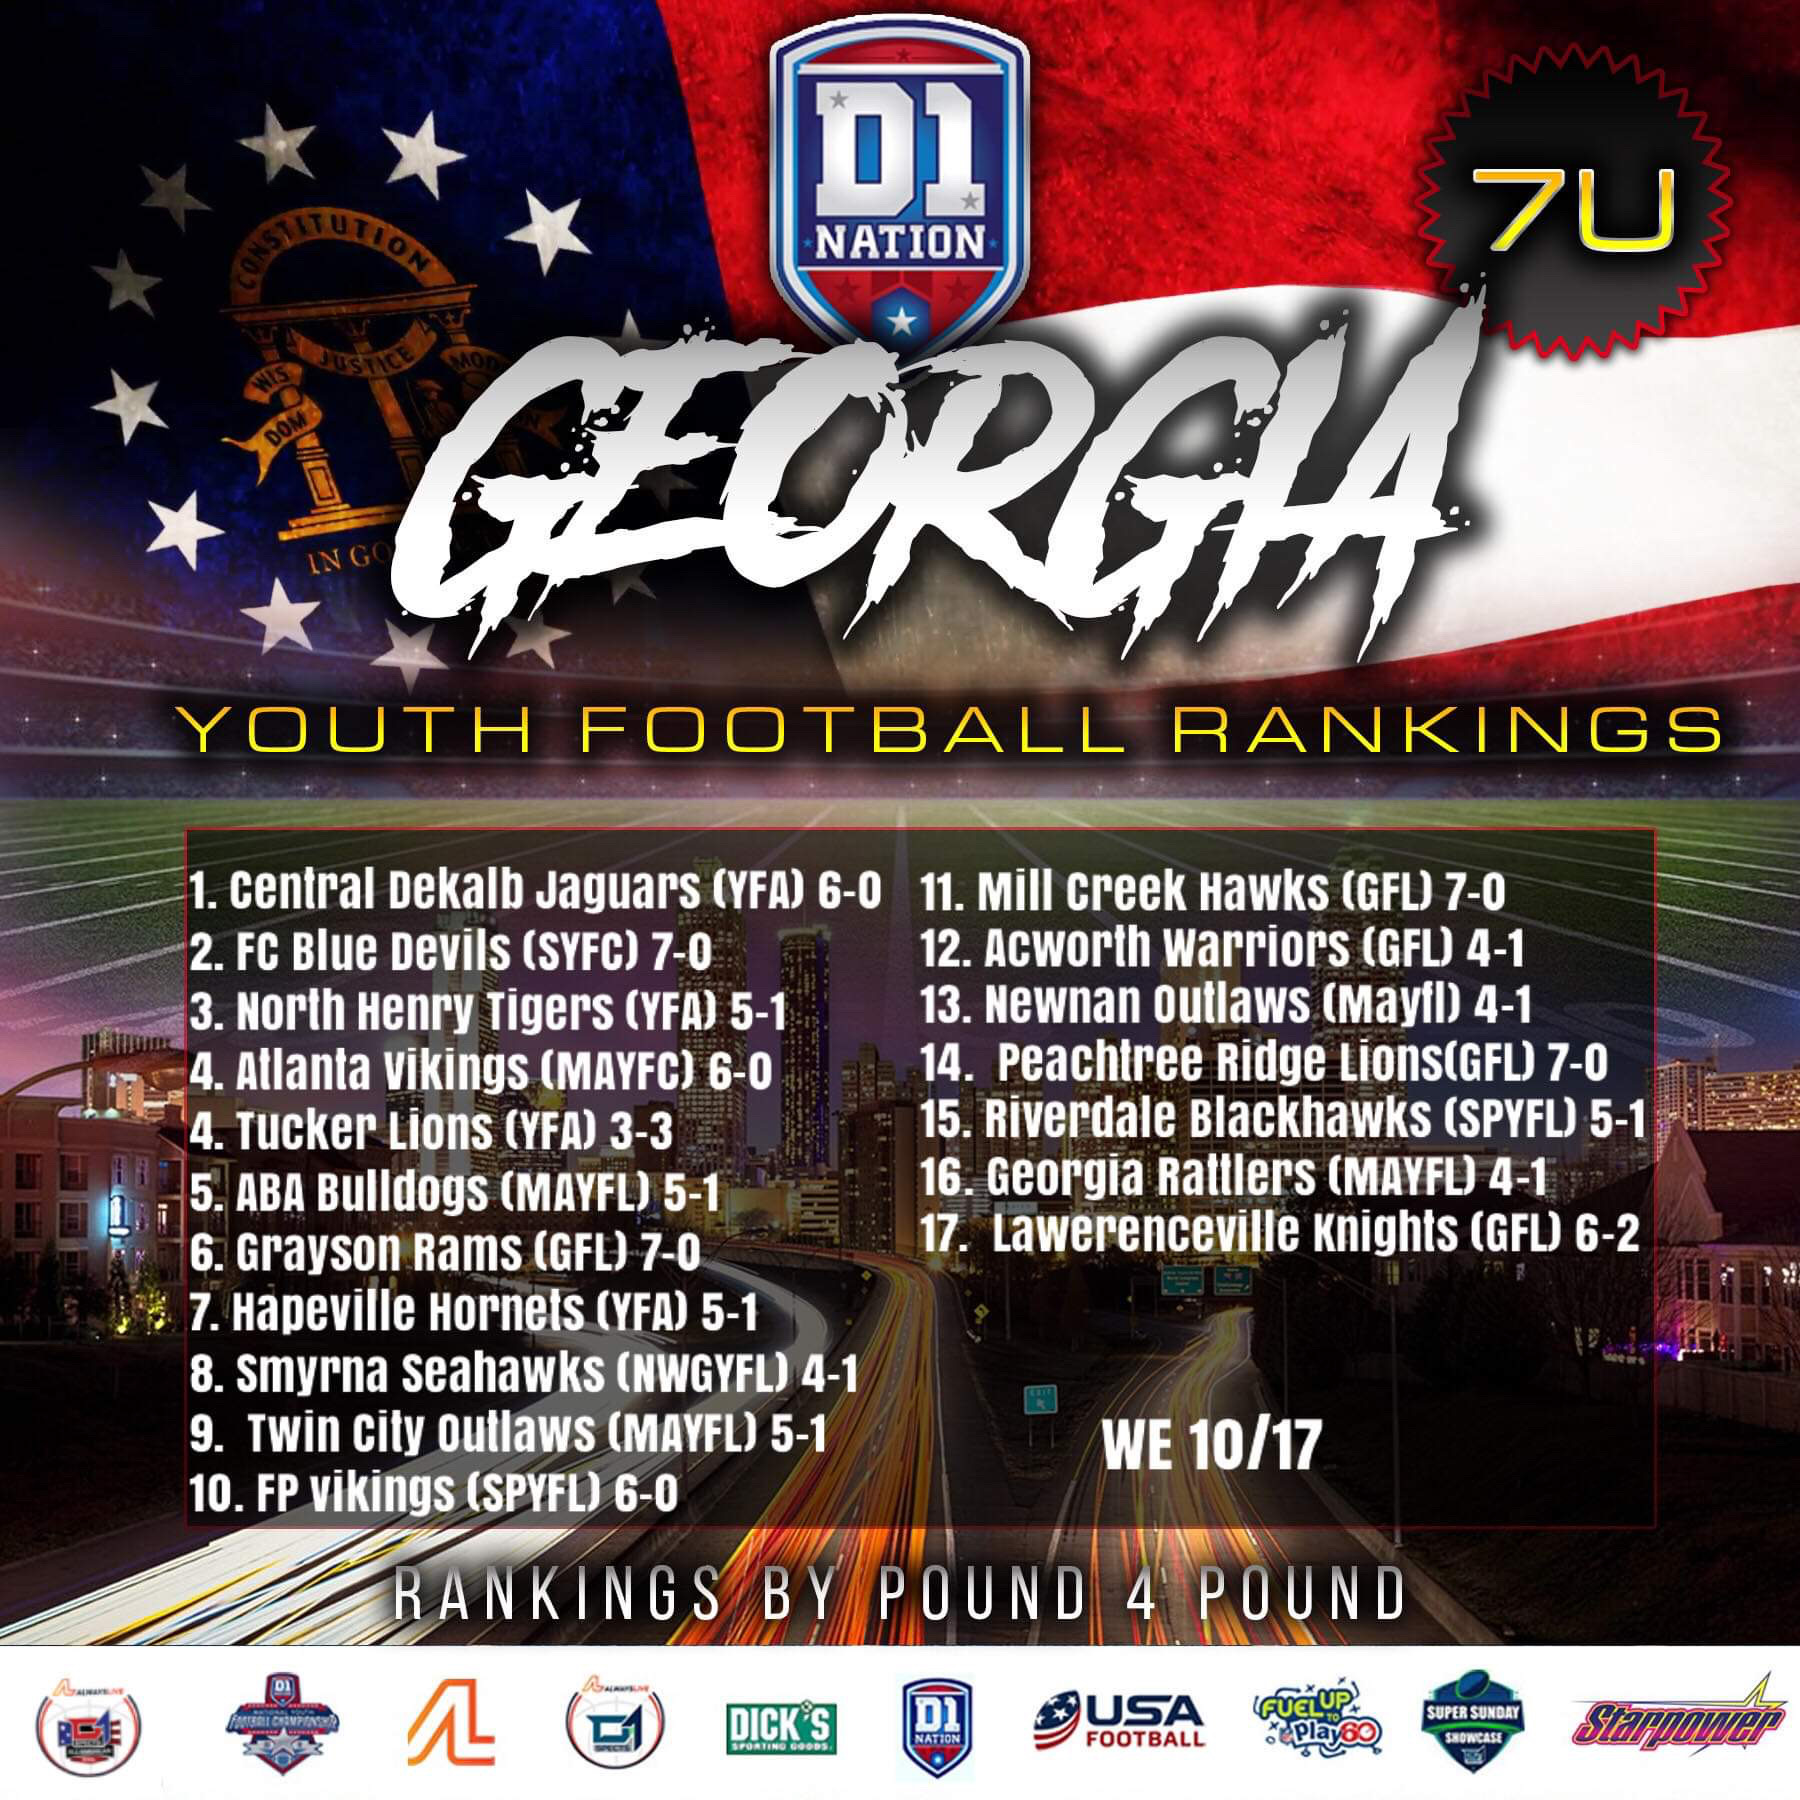 Update 10/21/2019: Georgia Youth Football Rankings – 7U